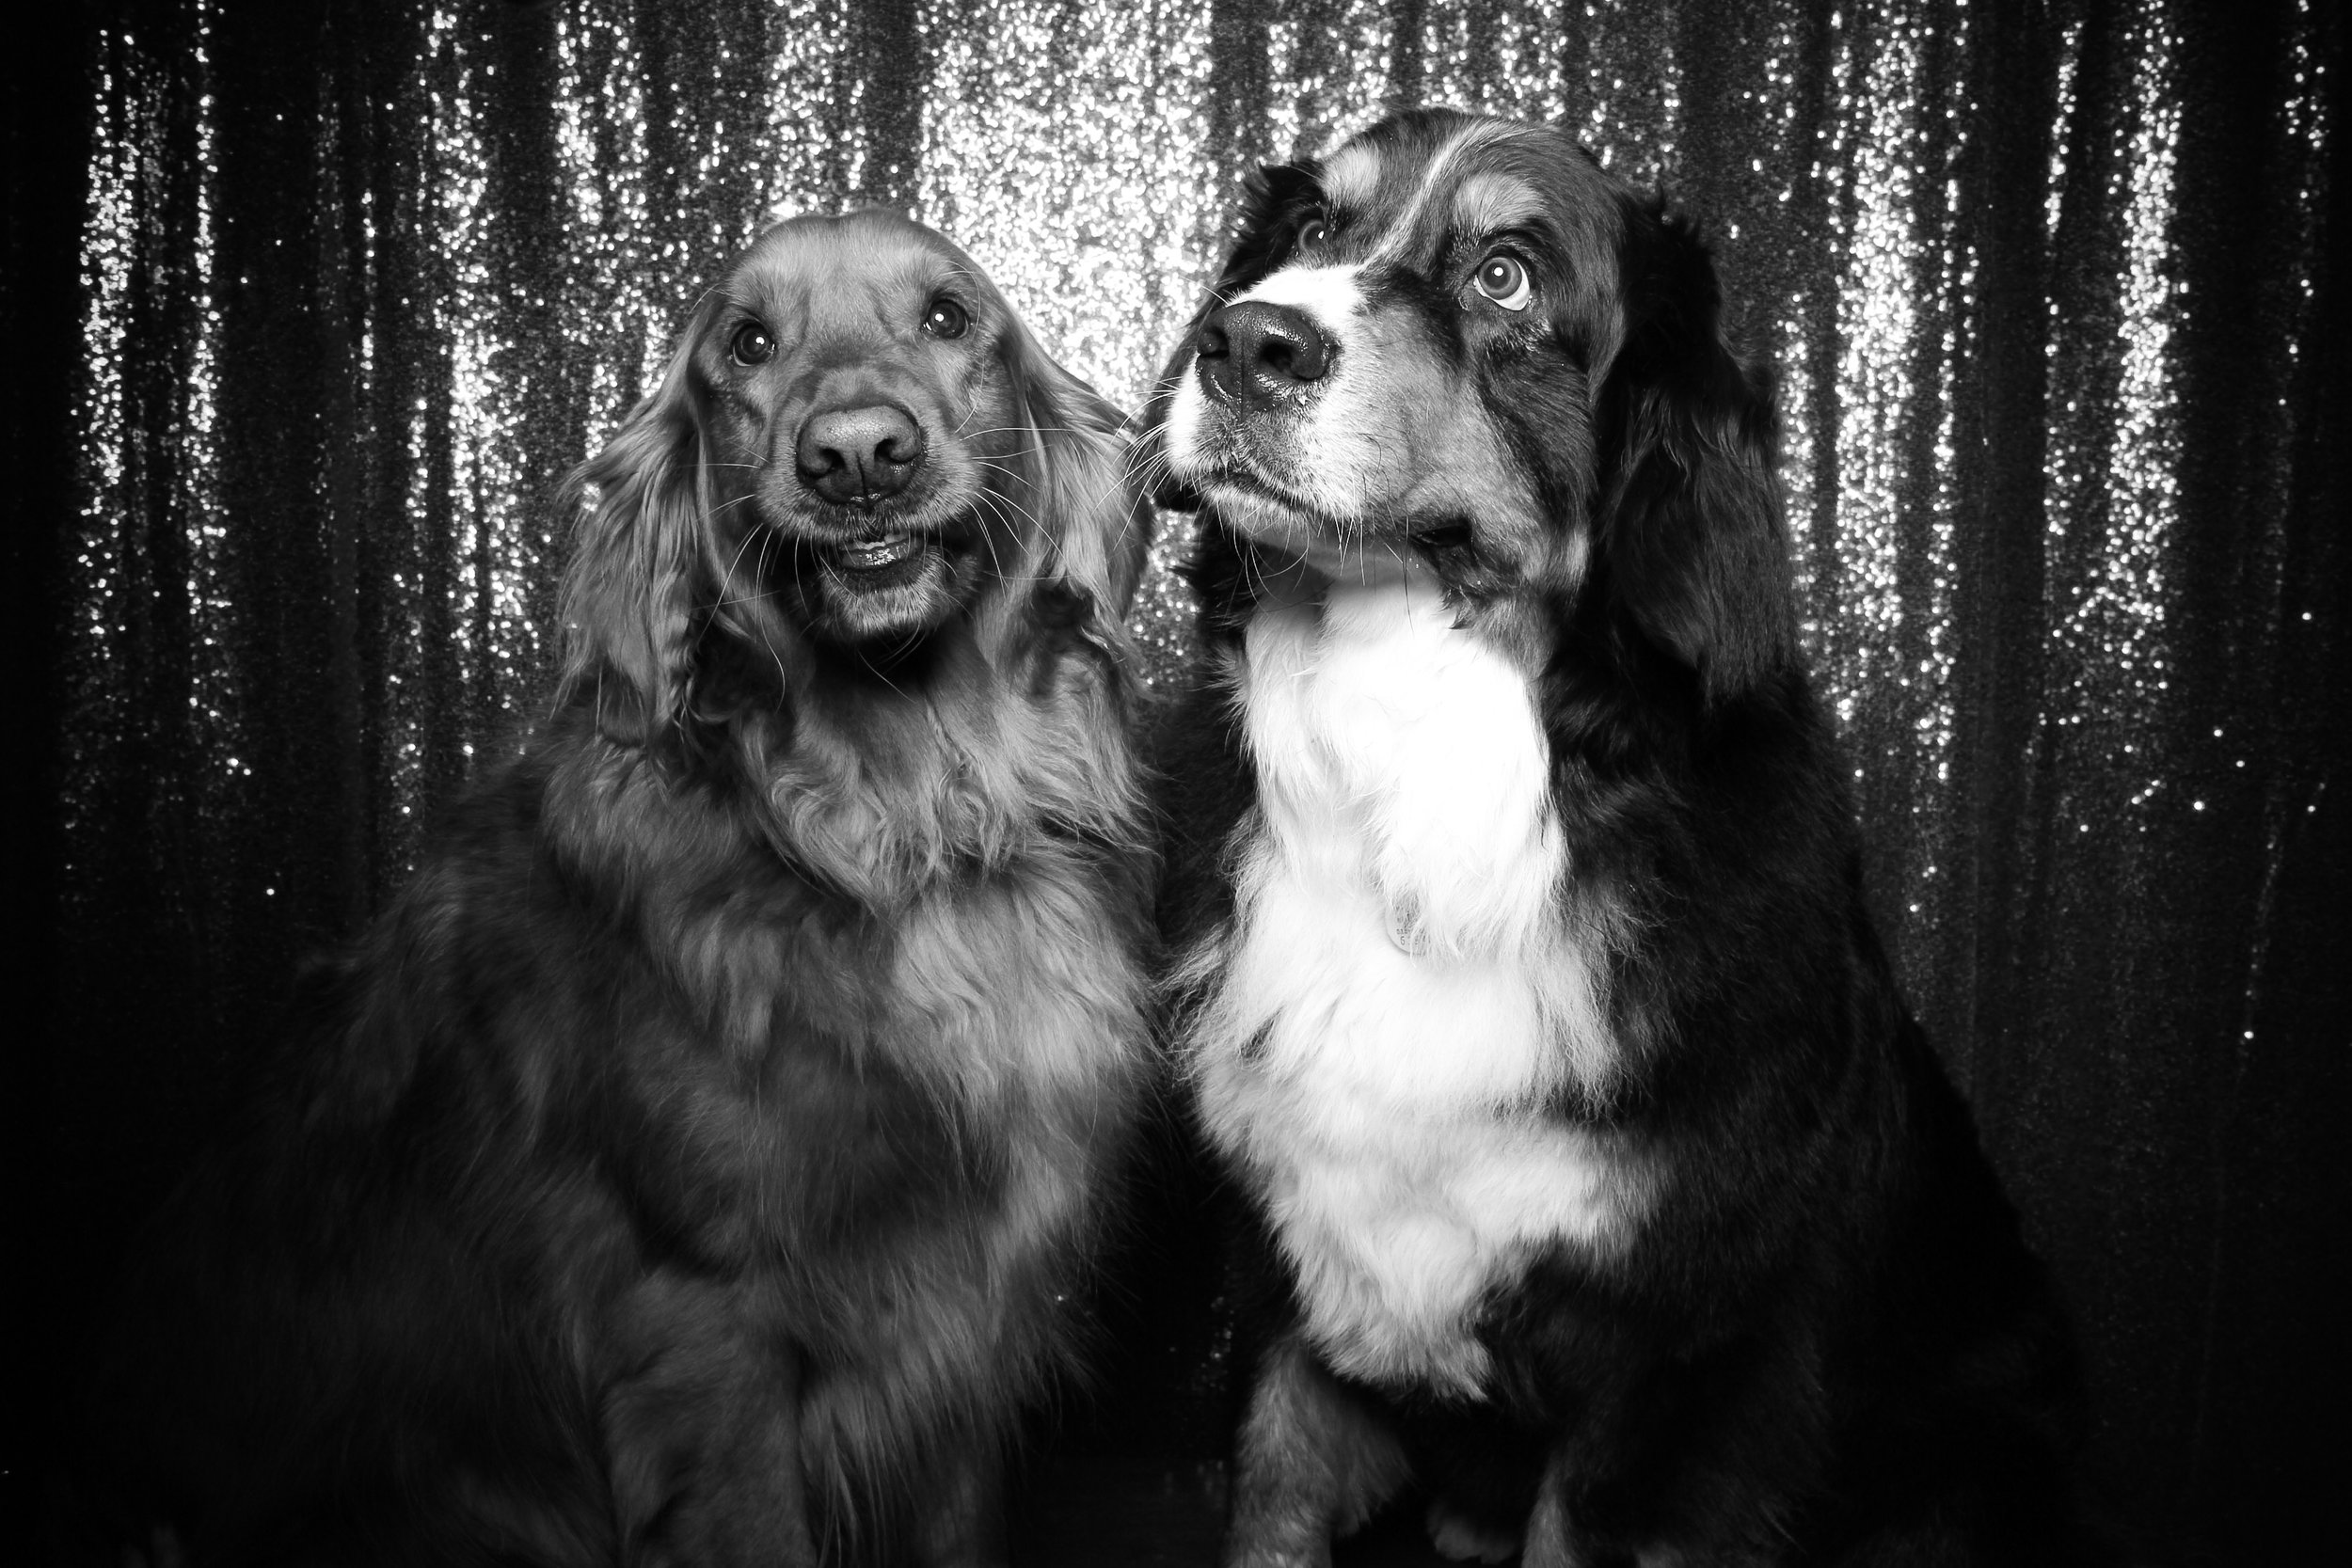 Chicago_Vintage_Photobooth_Valentines_Day_Dog_25.jpg